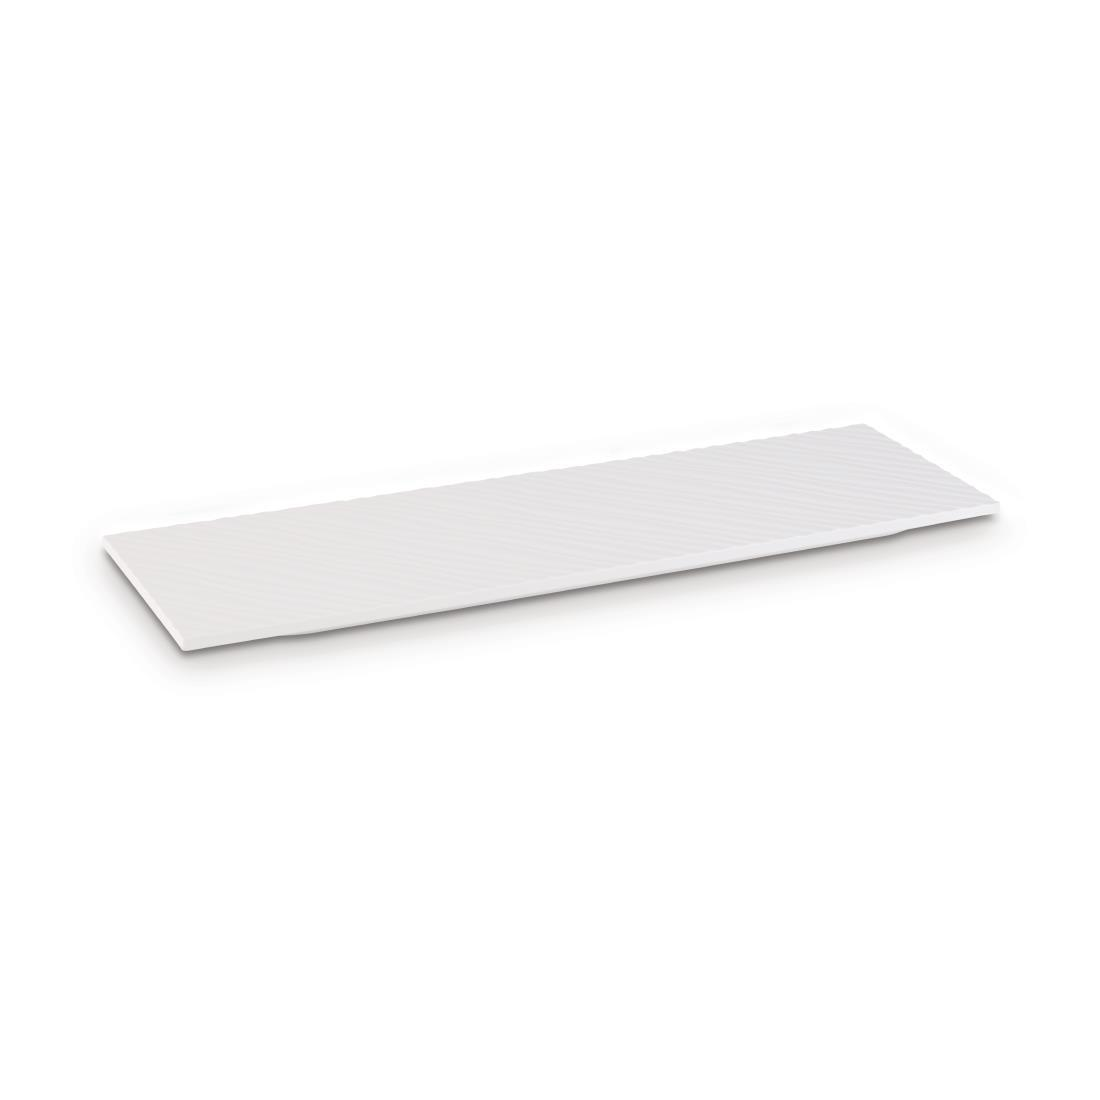 APS+ Tiles Tray White GN2/4 - Each - DT742